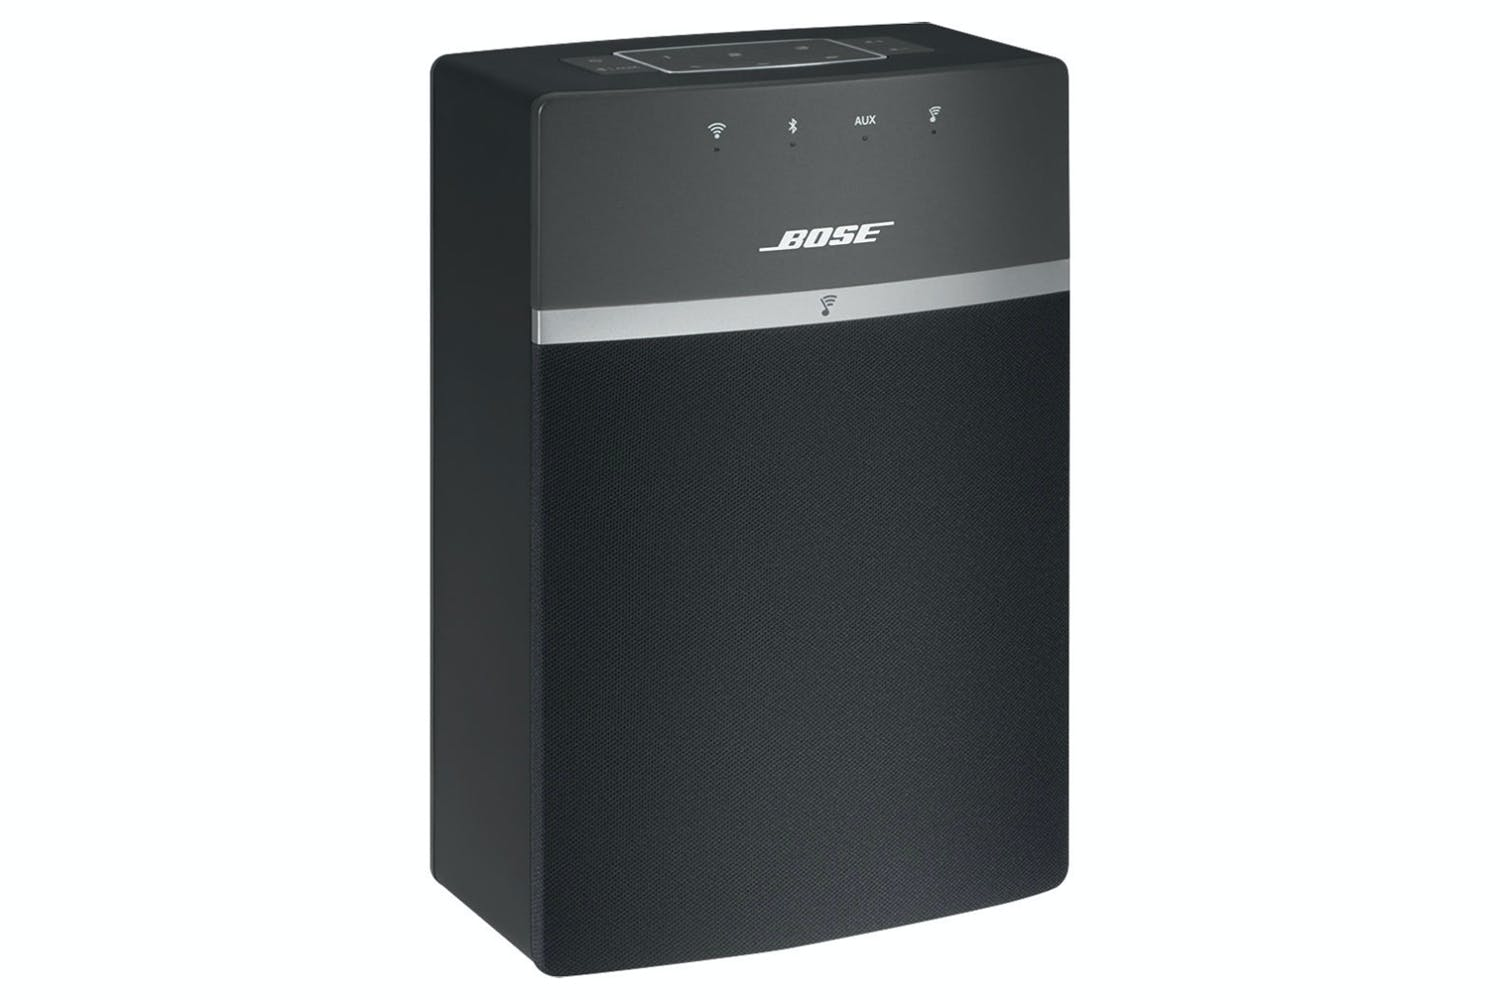 bose soundtouch home audio go harvey norman. Black Bedroom Furniture Sets. Home Design Ideas